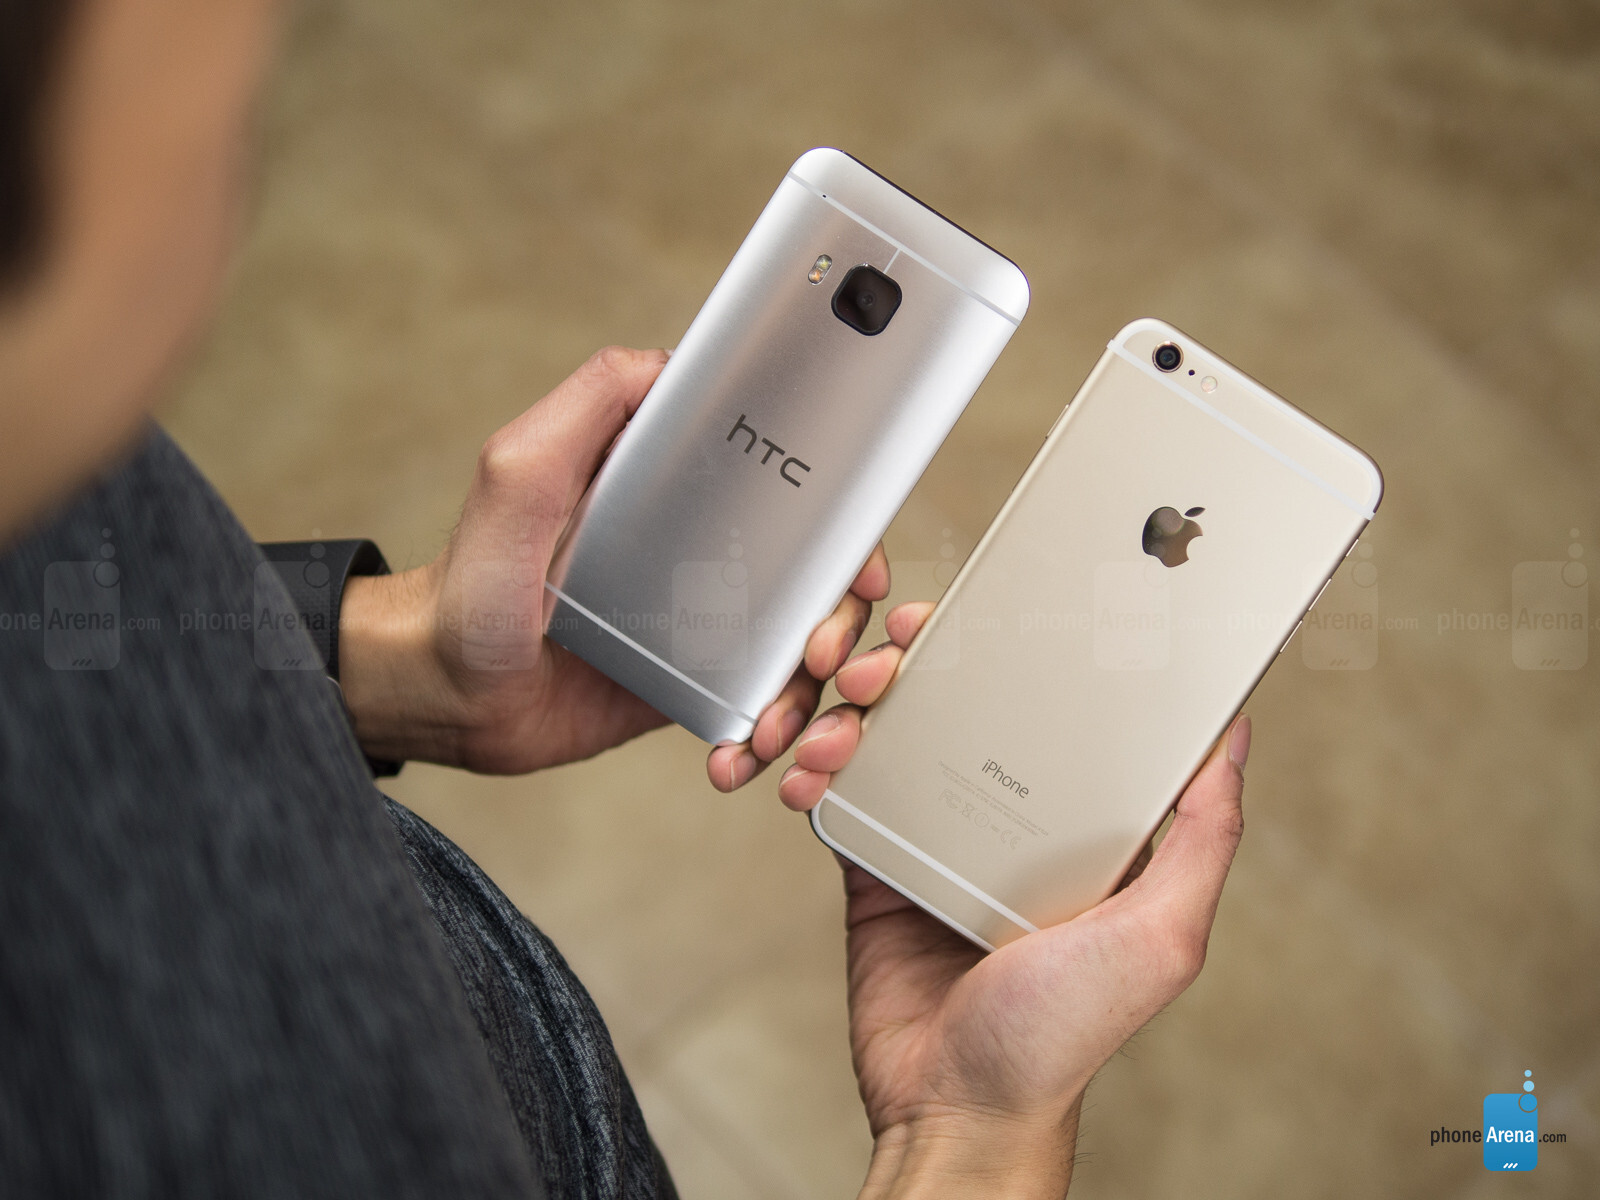 7 plus iphone vs htc one m9 größe